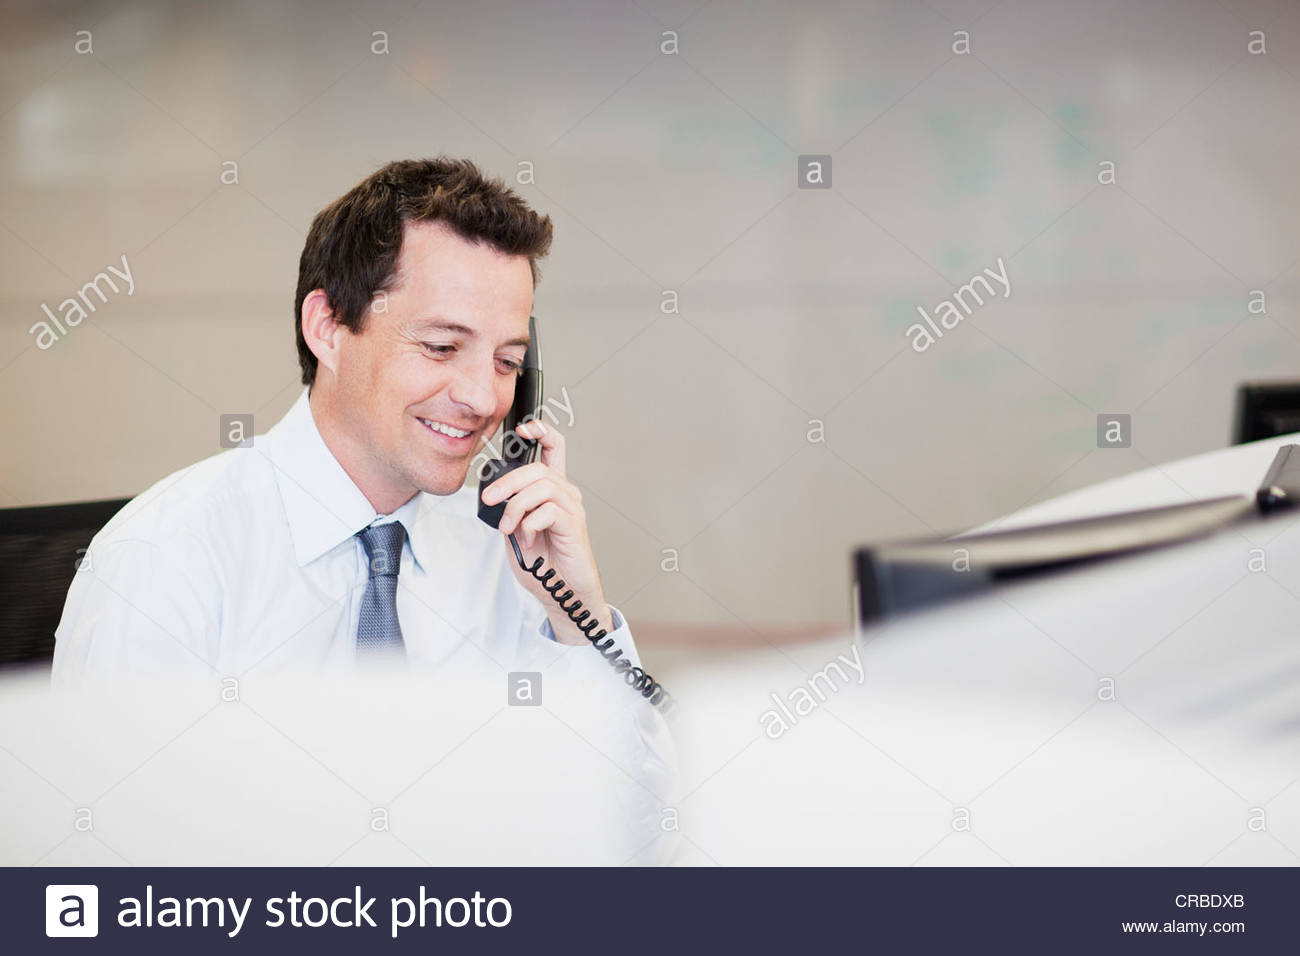 Smiling businessman talking on telephone in office - Stock Image